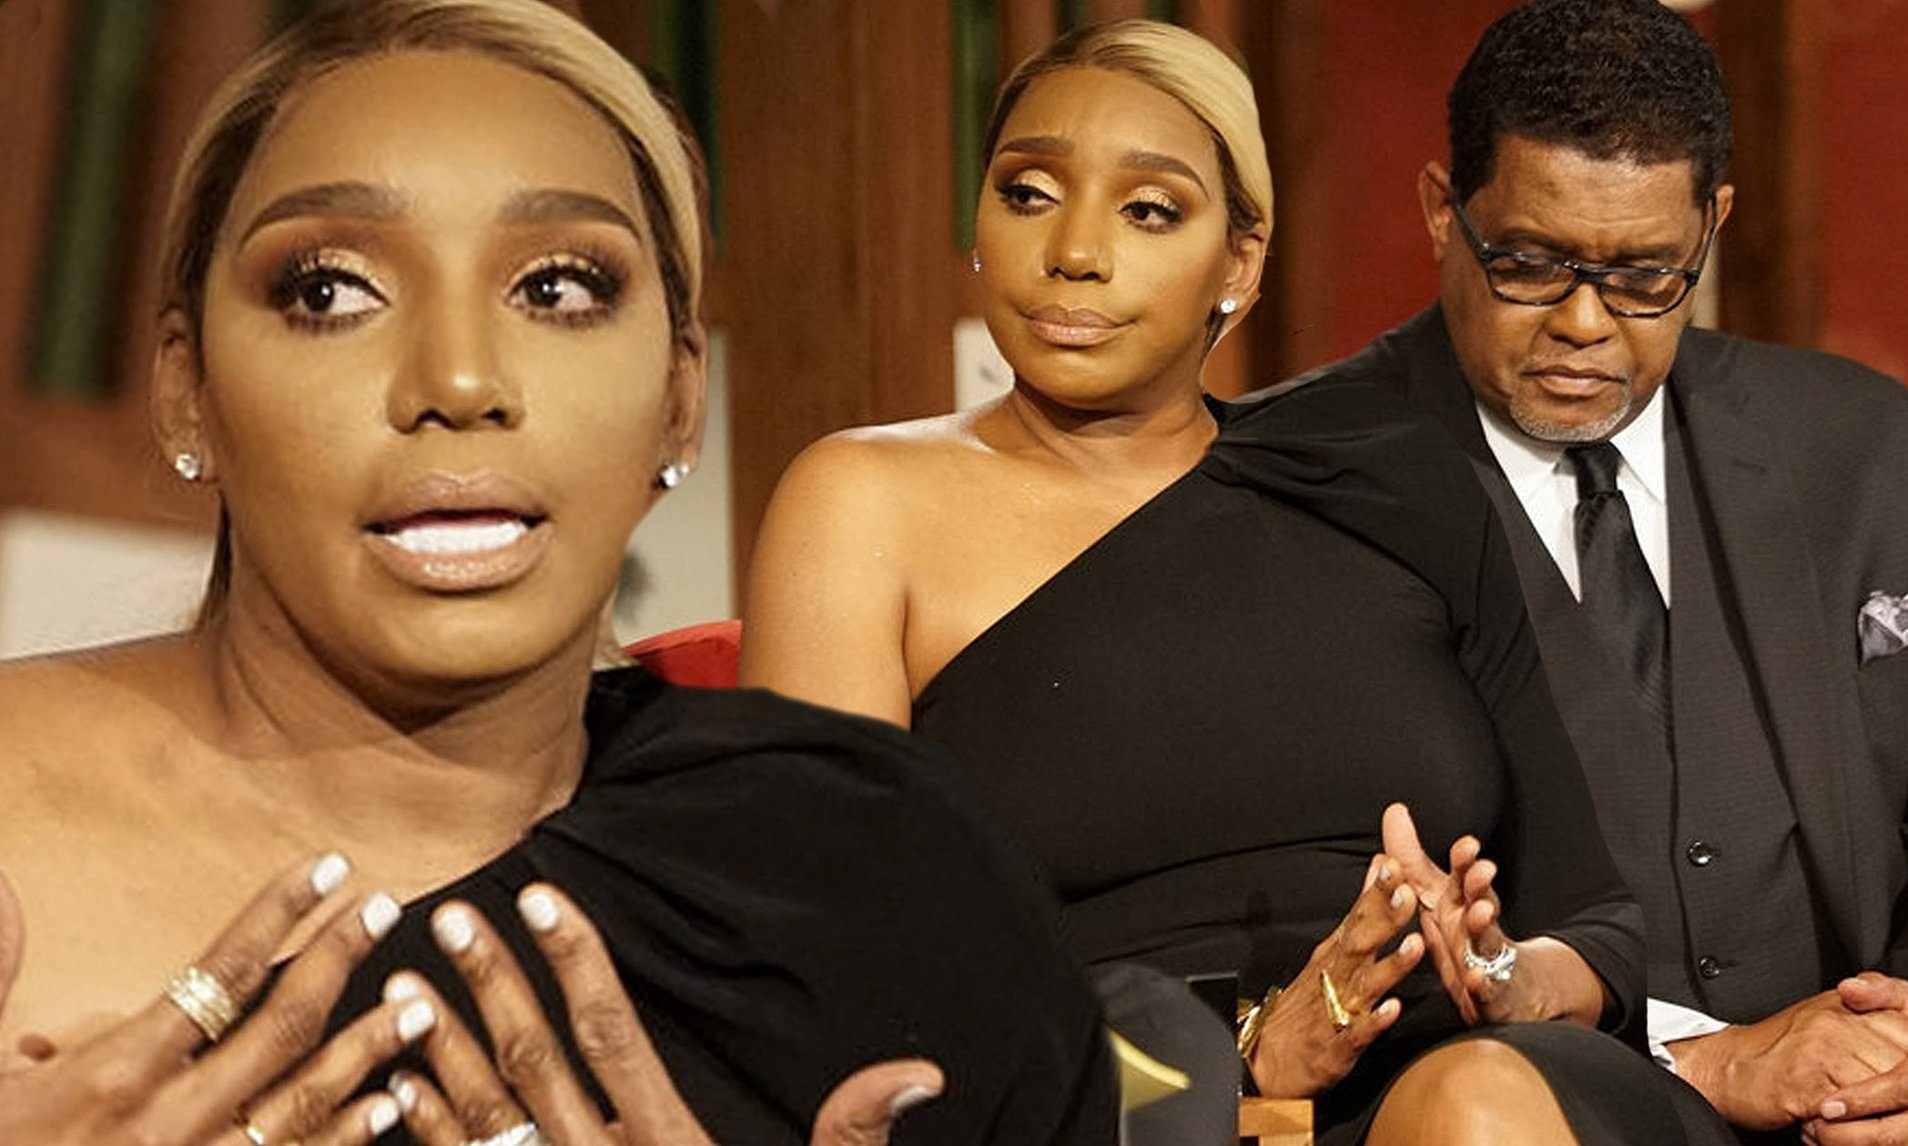 NeNe Leakes Reveals Her Relationship-Related Talk With Gregg Leakes - She's Shocked By What He Told Her - See For Yourselves Here